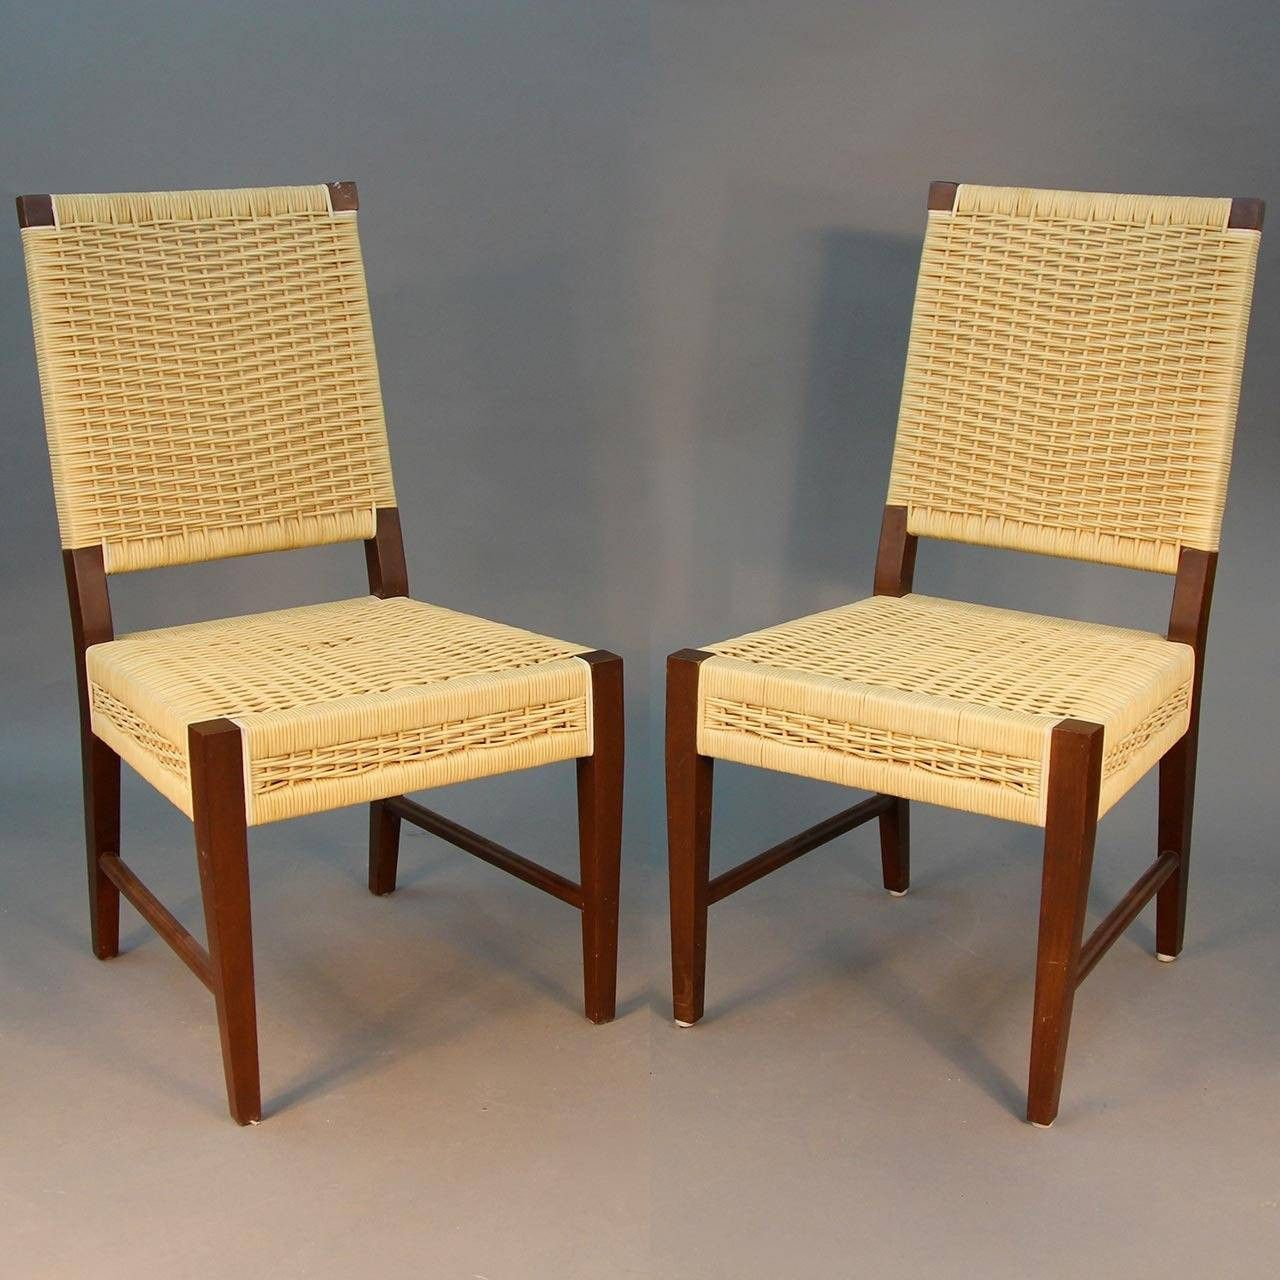 99+ Raffia Dining Chairs - Modern Wood Furniture Check more at // & 99+ Raffia Dining Chairs - Modern Wood Furniture Check more at http ...